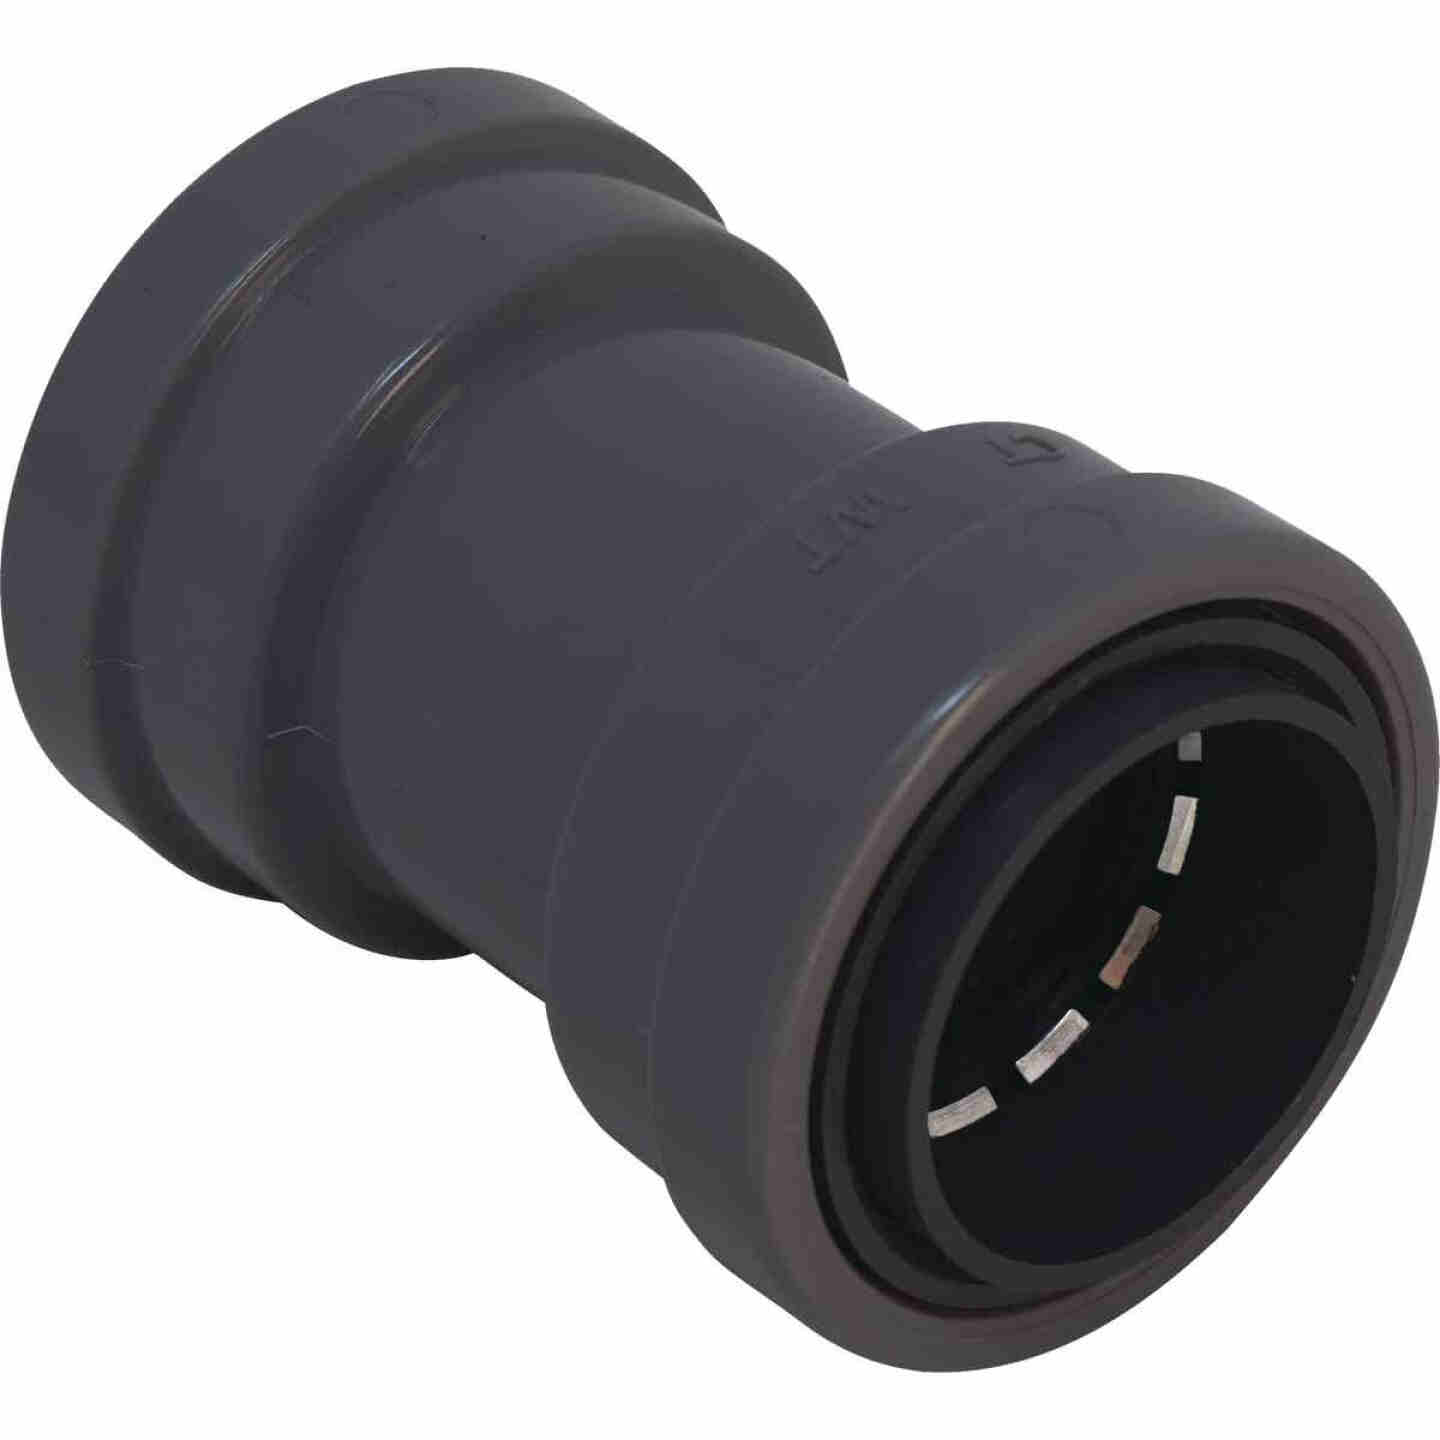 Southwire SimPush 1/2 In. Liquid Tight Push-To-Install Type B Conduit Coupling Image 1